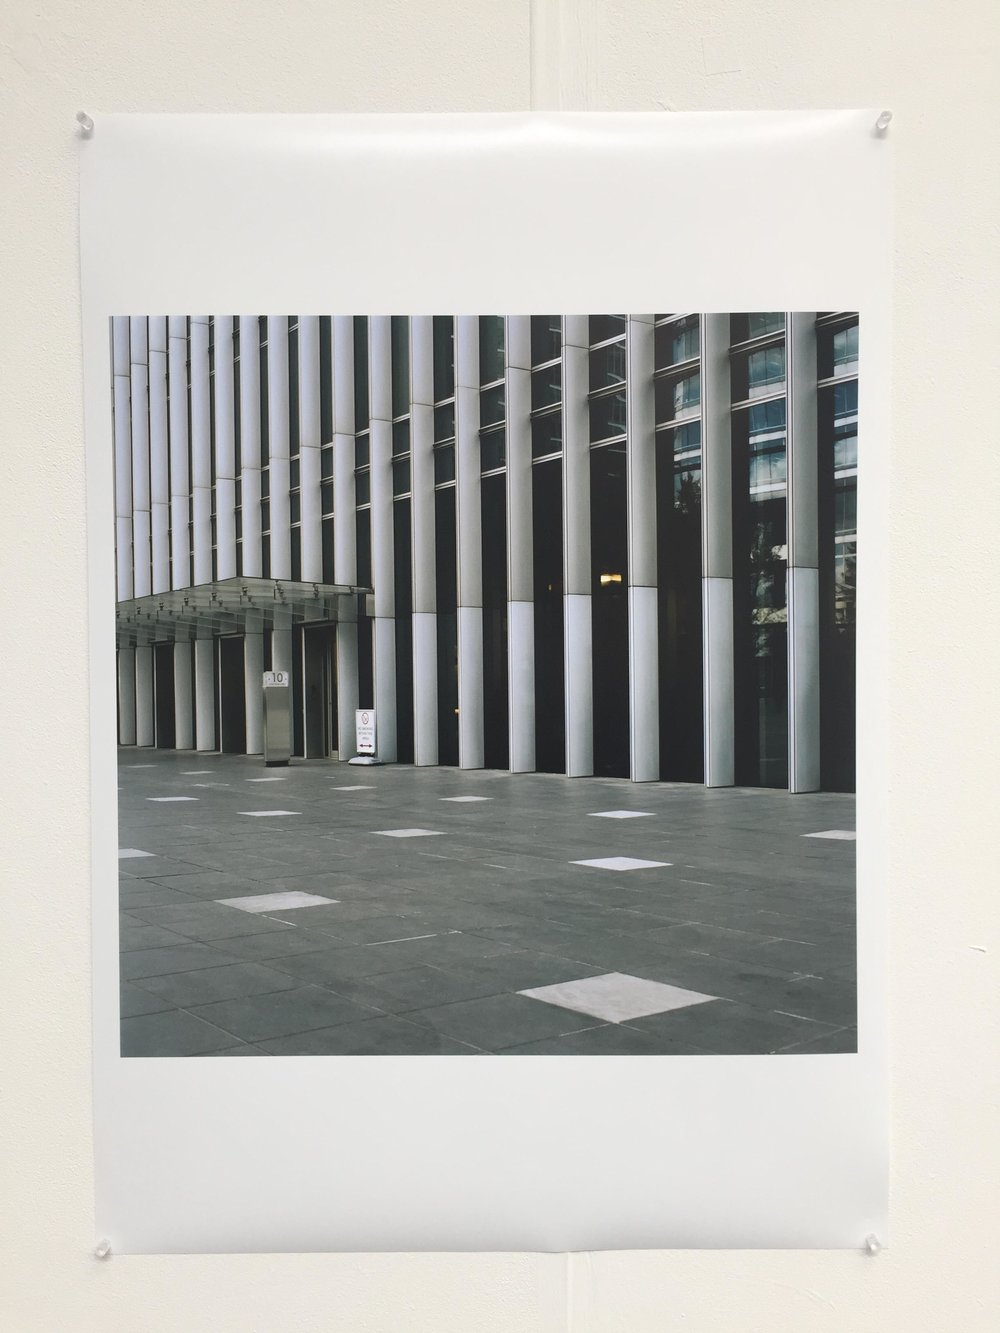 Original A1 print exhibited at The Old Truman Brewery.£499 - Item Code: EP1